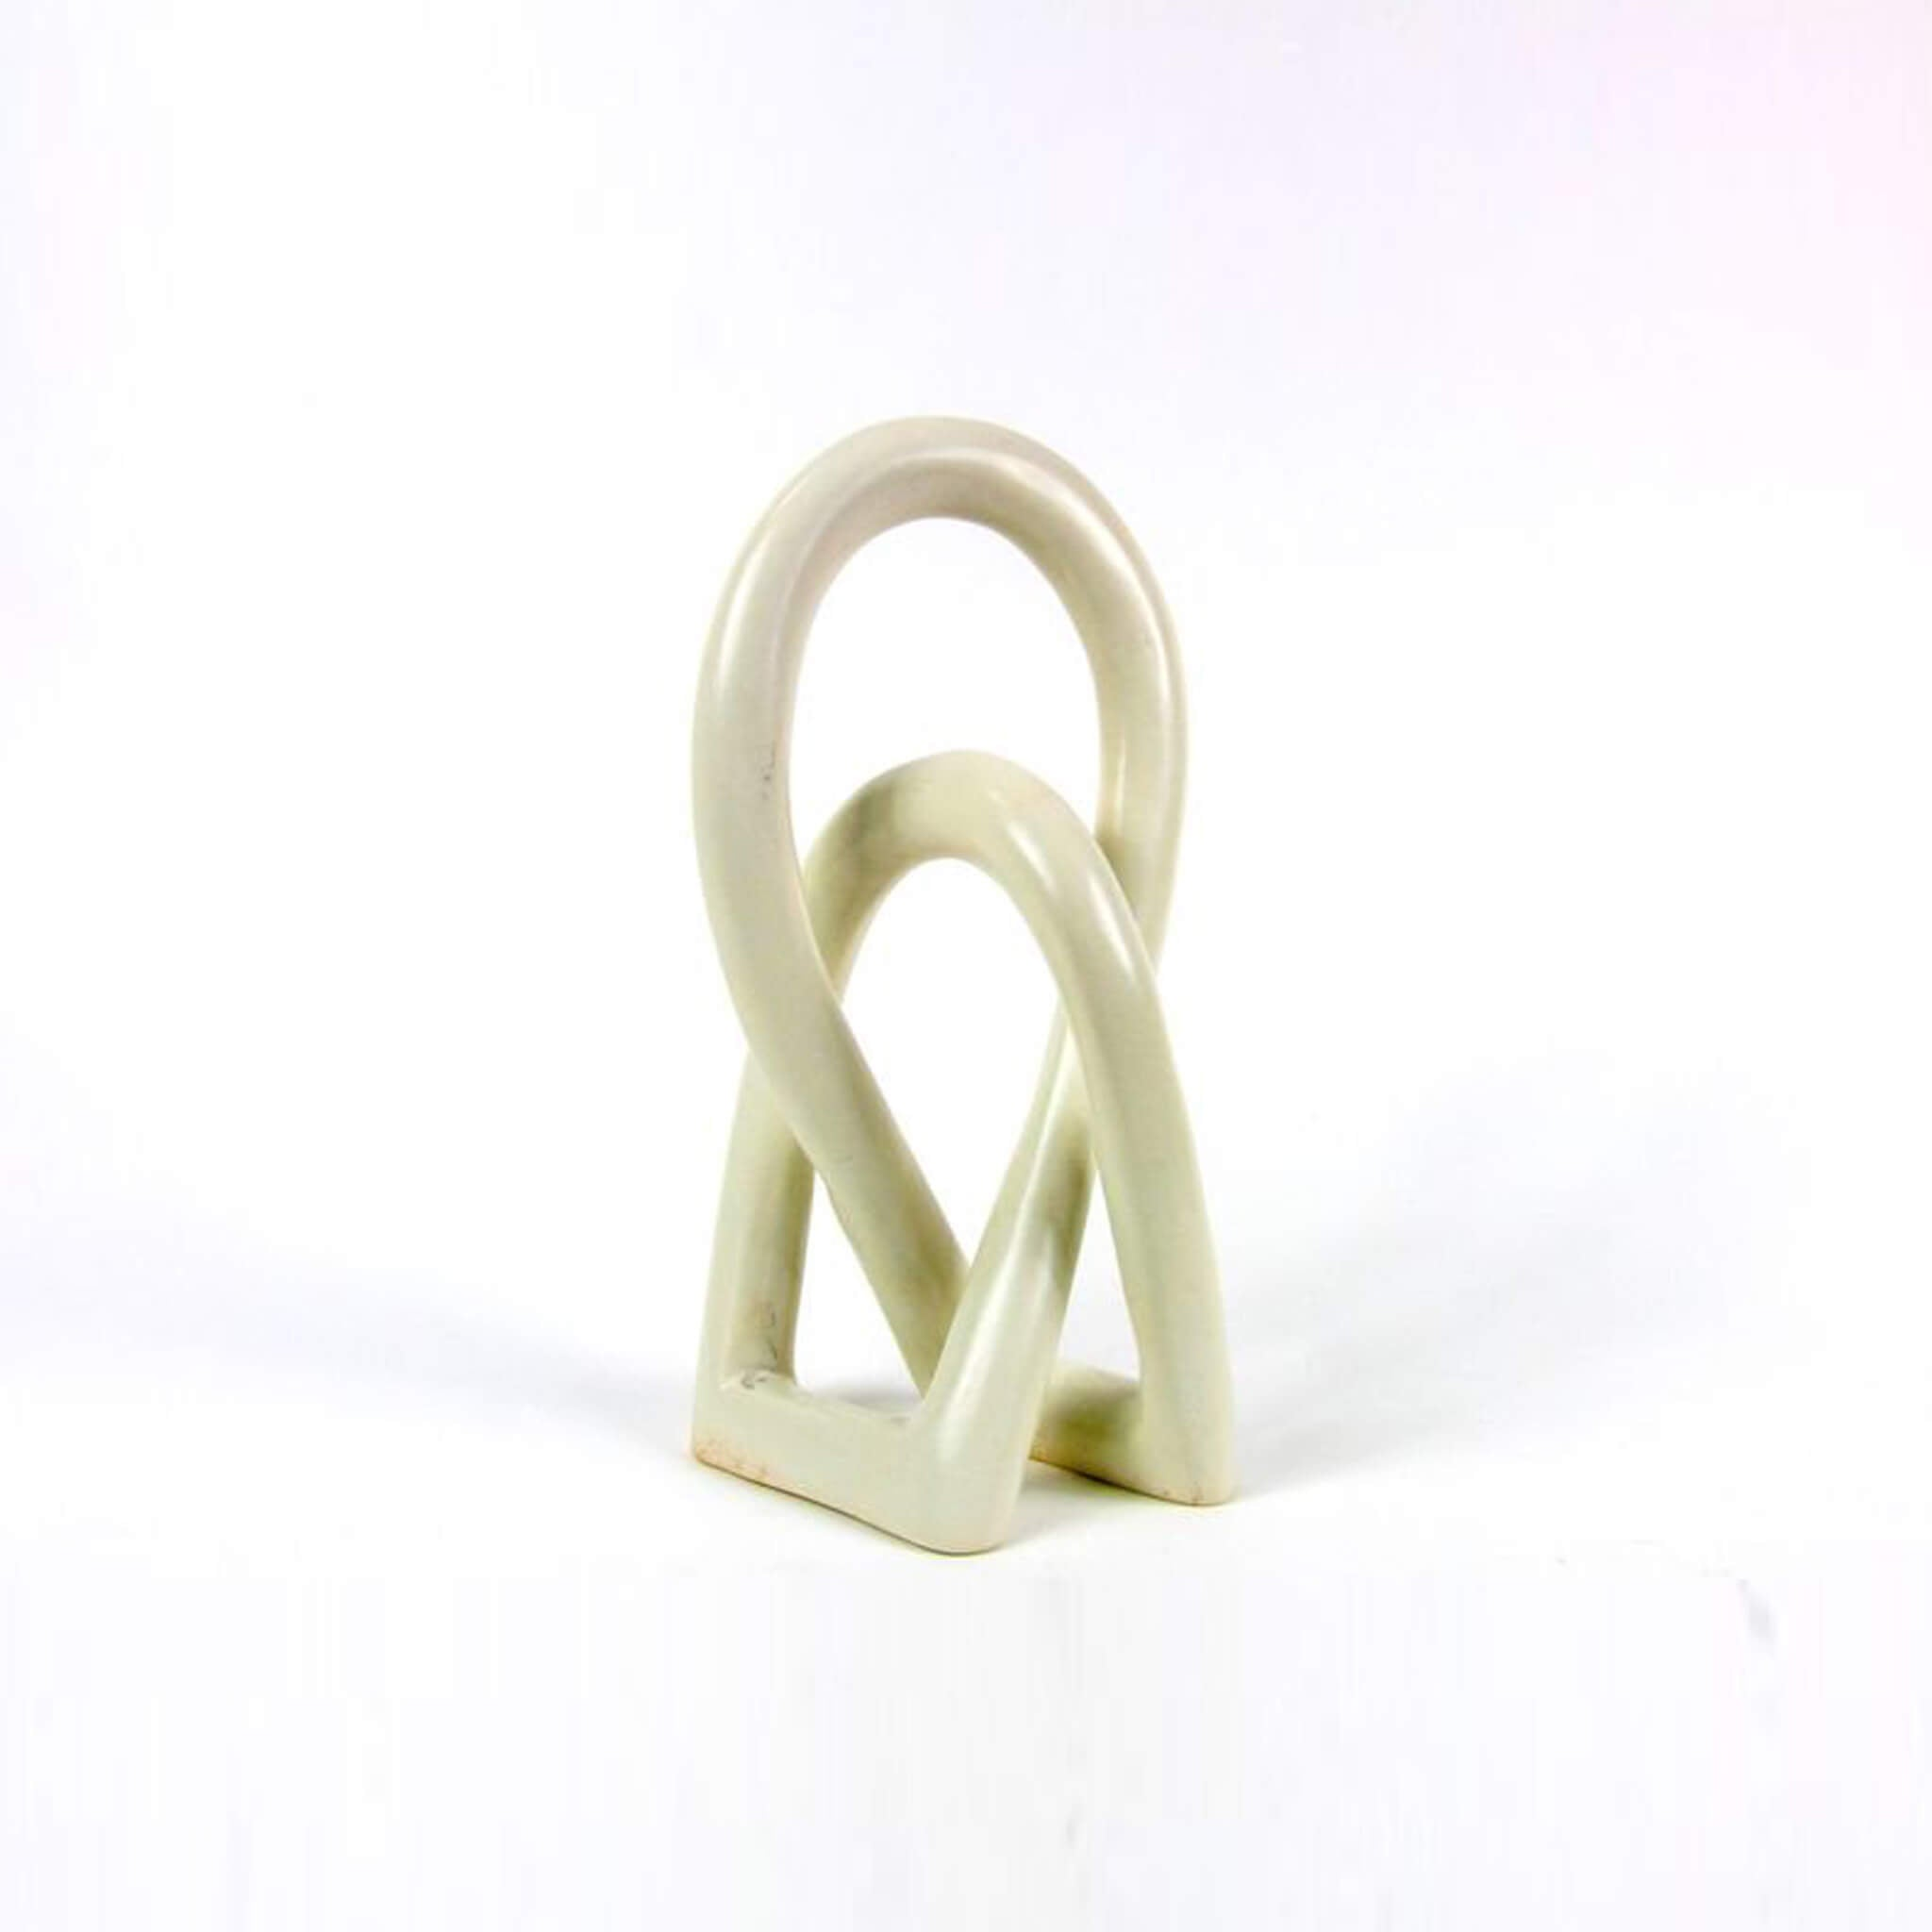 Knots Minimal sculpture handcarved soapstone - Unik by Nature